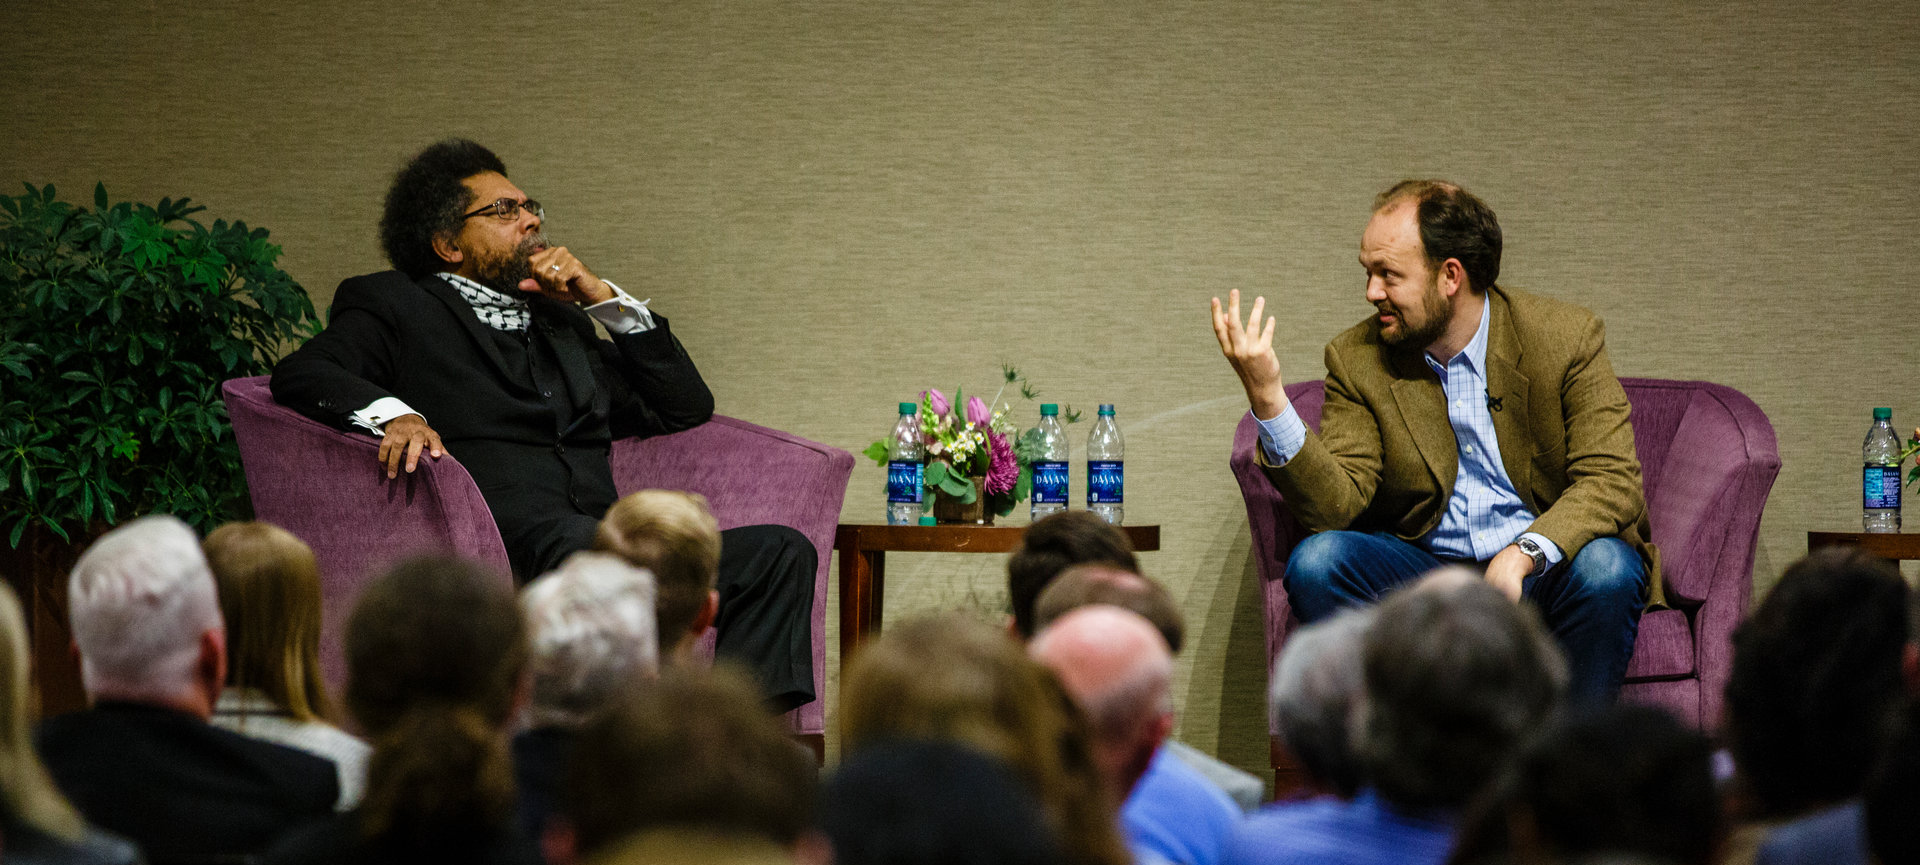 cornel west and ross douthat speaking on a panel